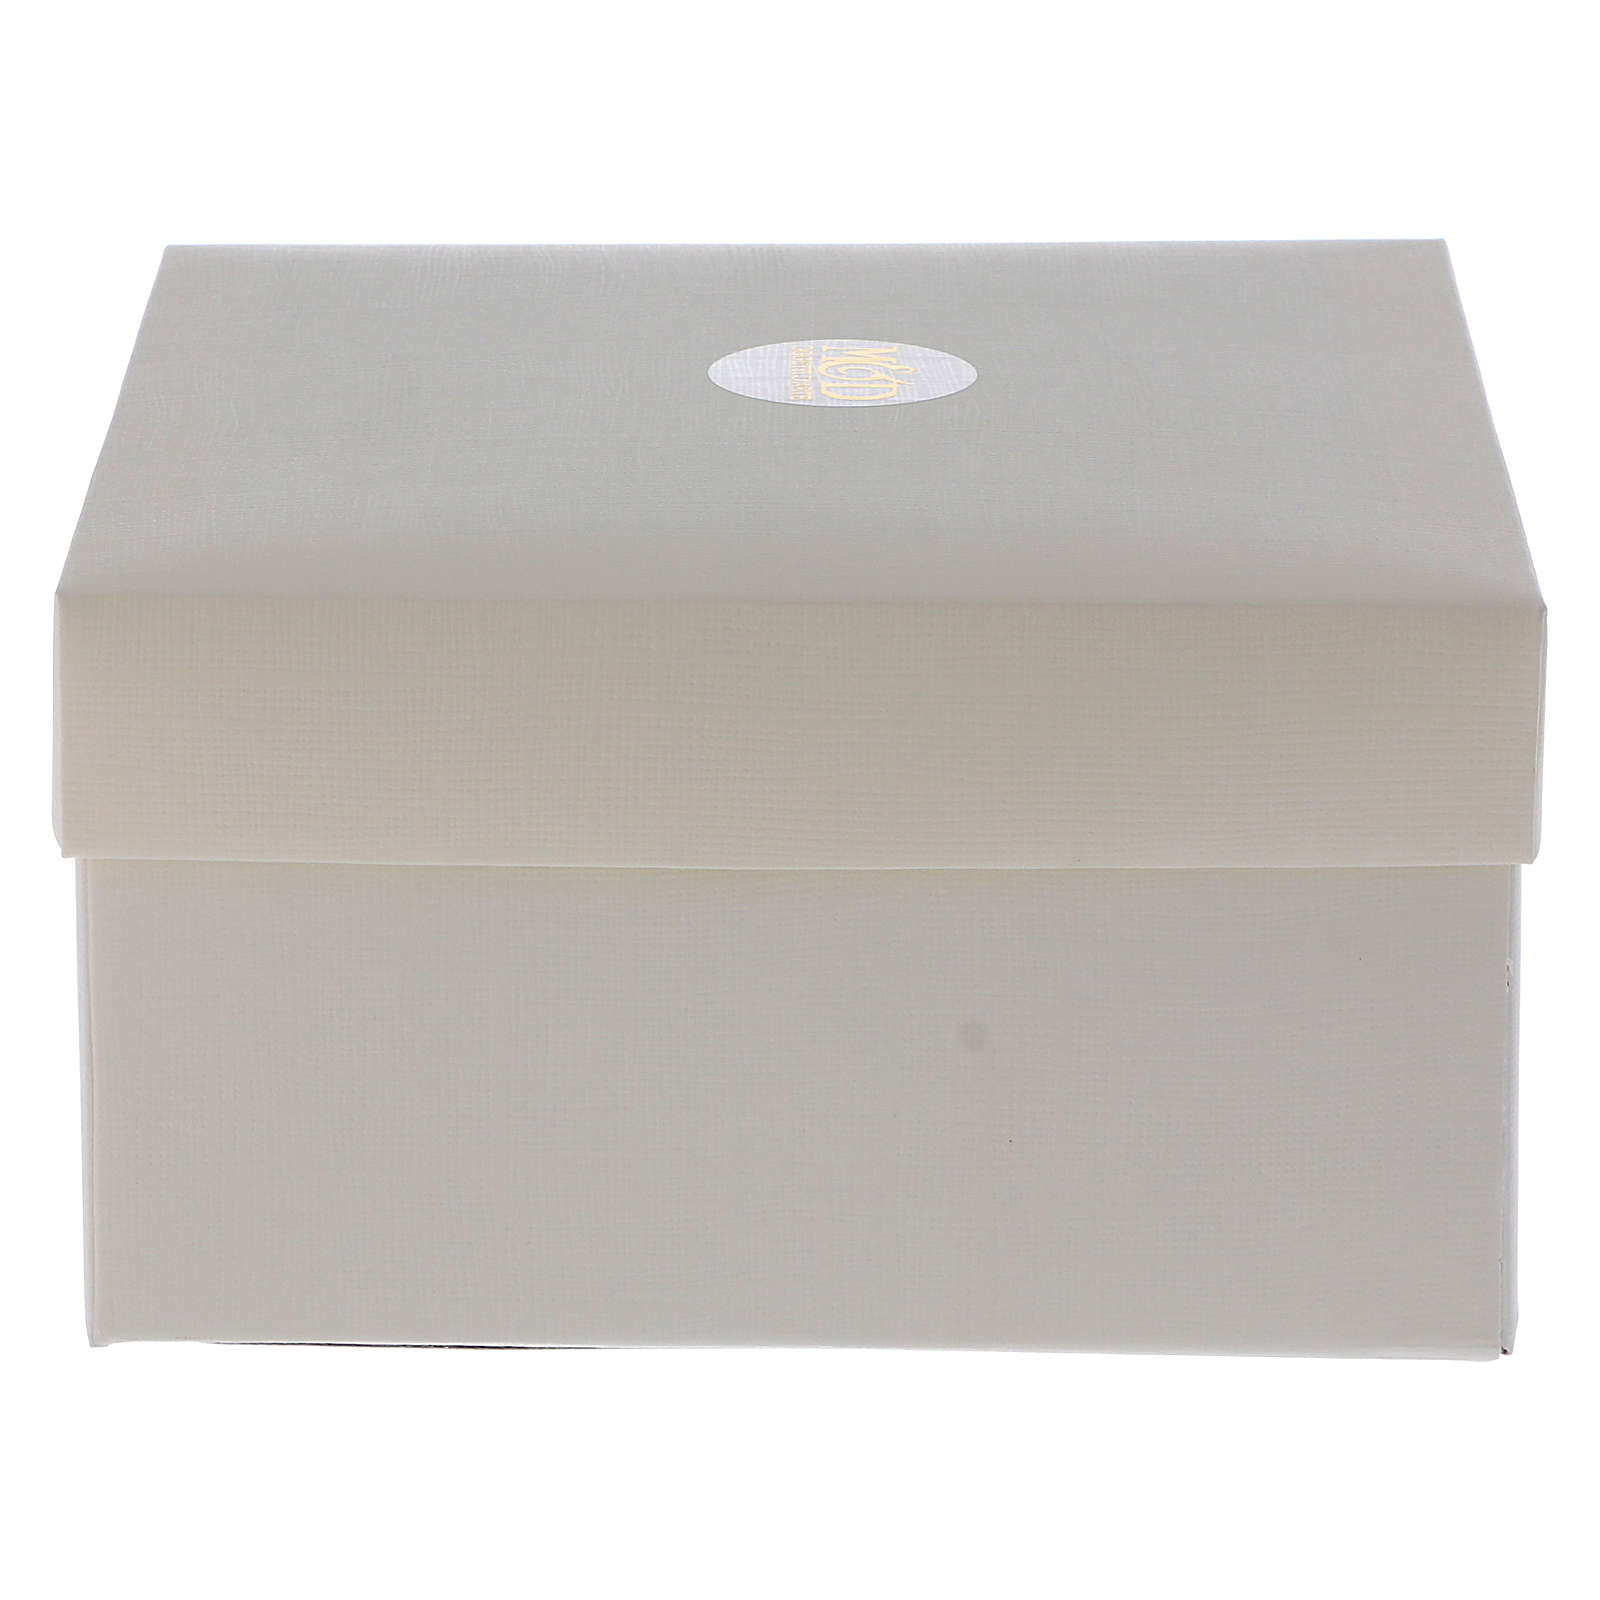 Box-shaped party favour for Confirmation 5x5x5 cm 3